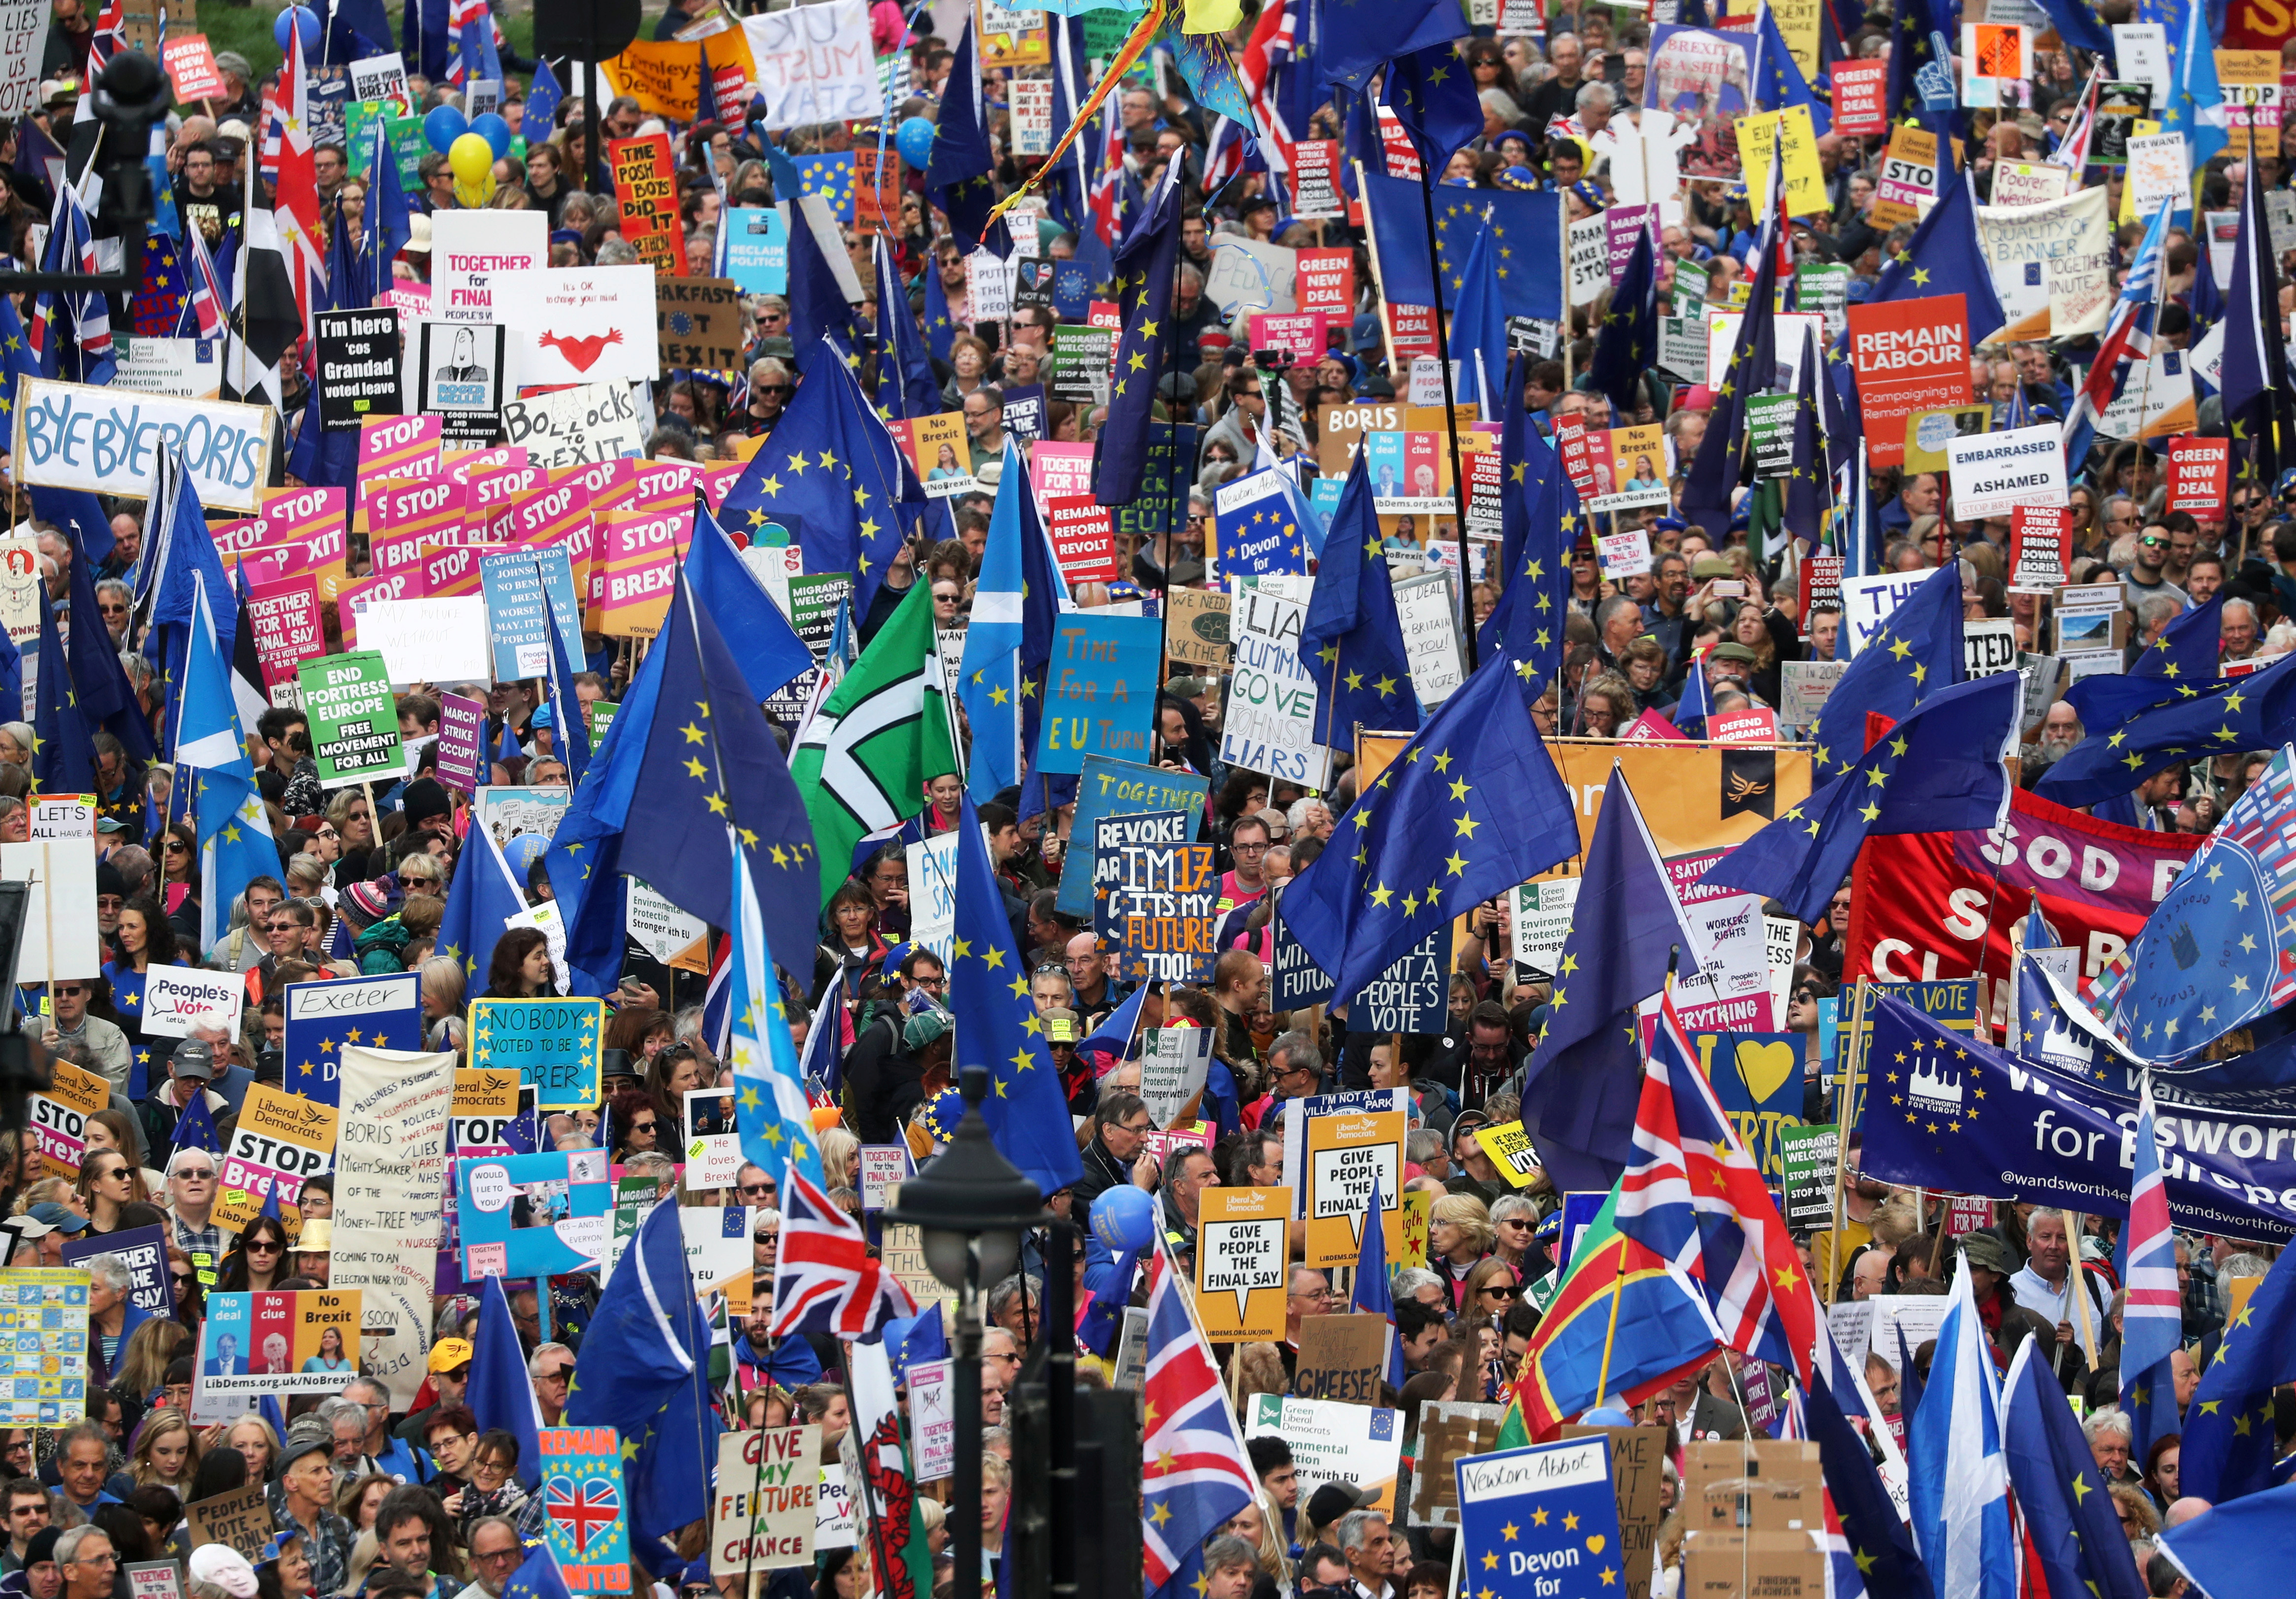 EU supporters march as parliament sits on a Saturday for the first time since the 1982 Falklands War, to discuss Brexit in London, Britain, October 19, 2019.